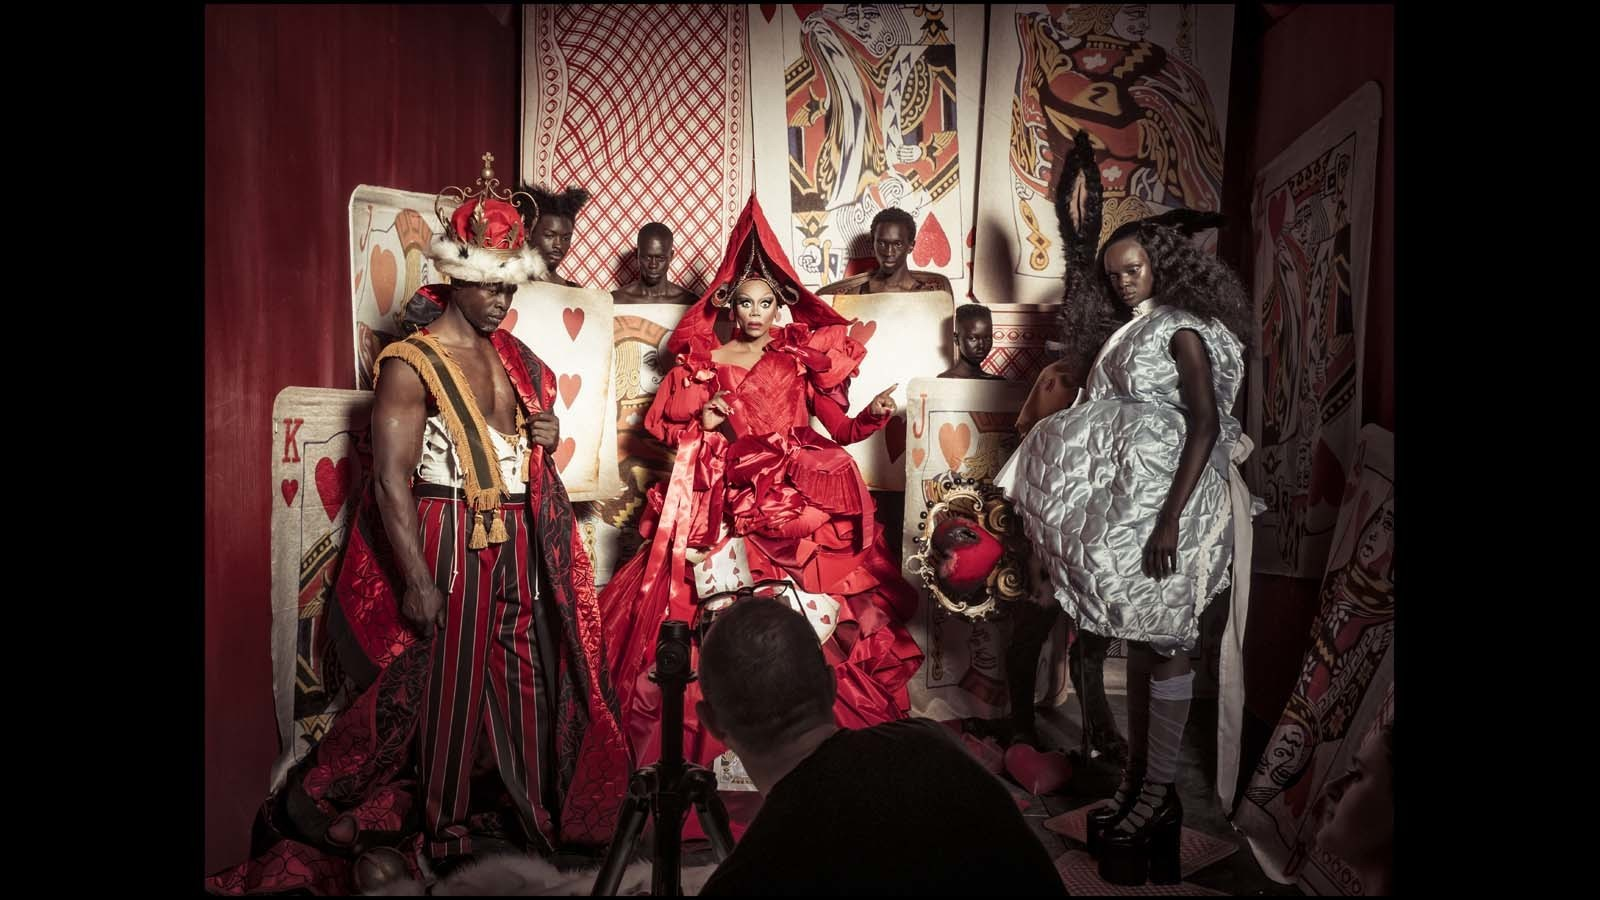 Djimon Hounsou, left, RuPaul and Duckie Thot pose for Tim Walker. (Behind-the-scenes imagery from the 2018 Pirelli Calendar by Tim Walker / Alessandro Scotti)